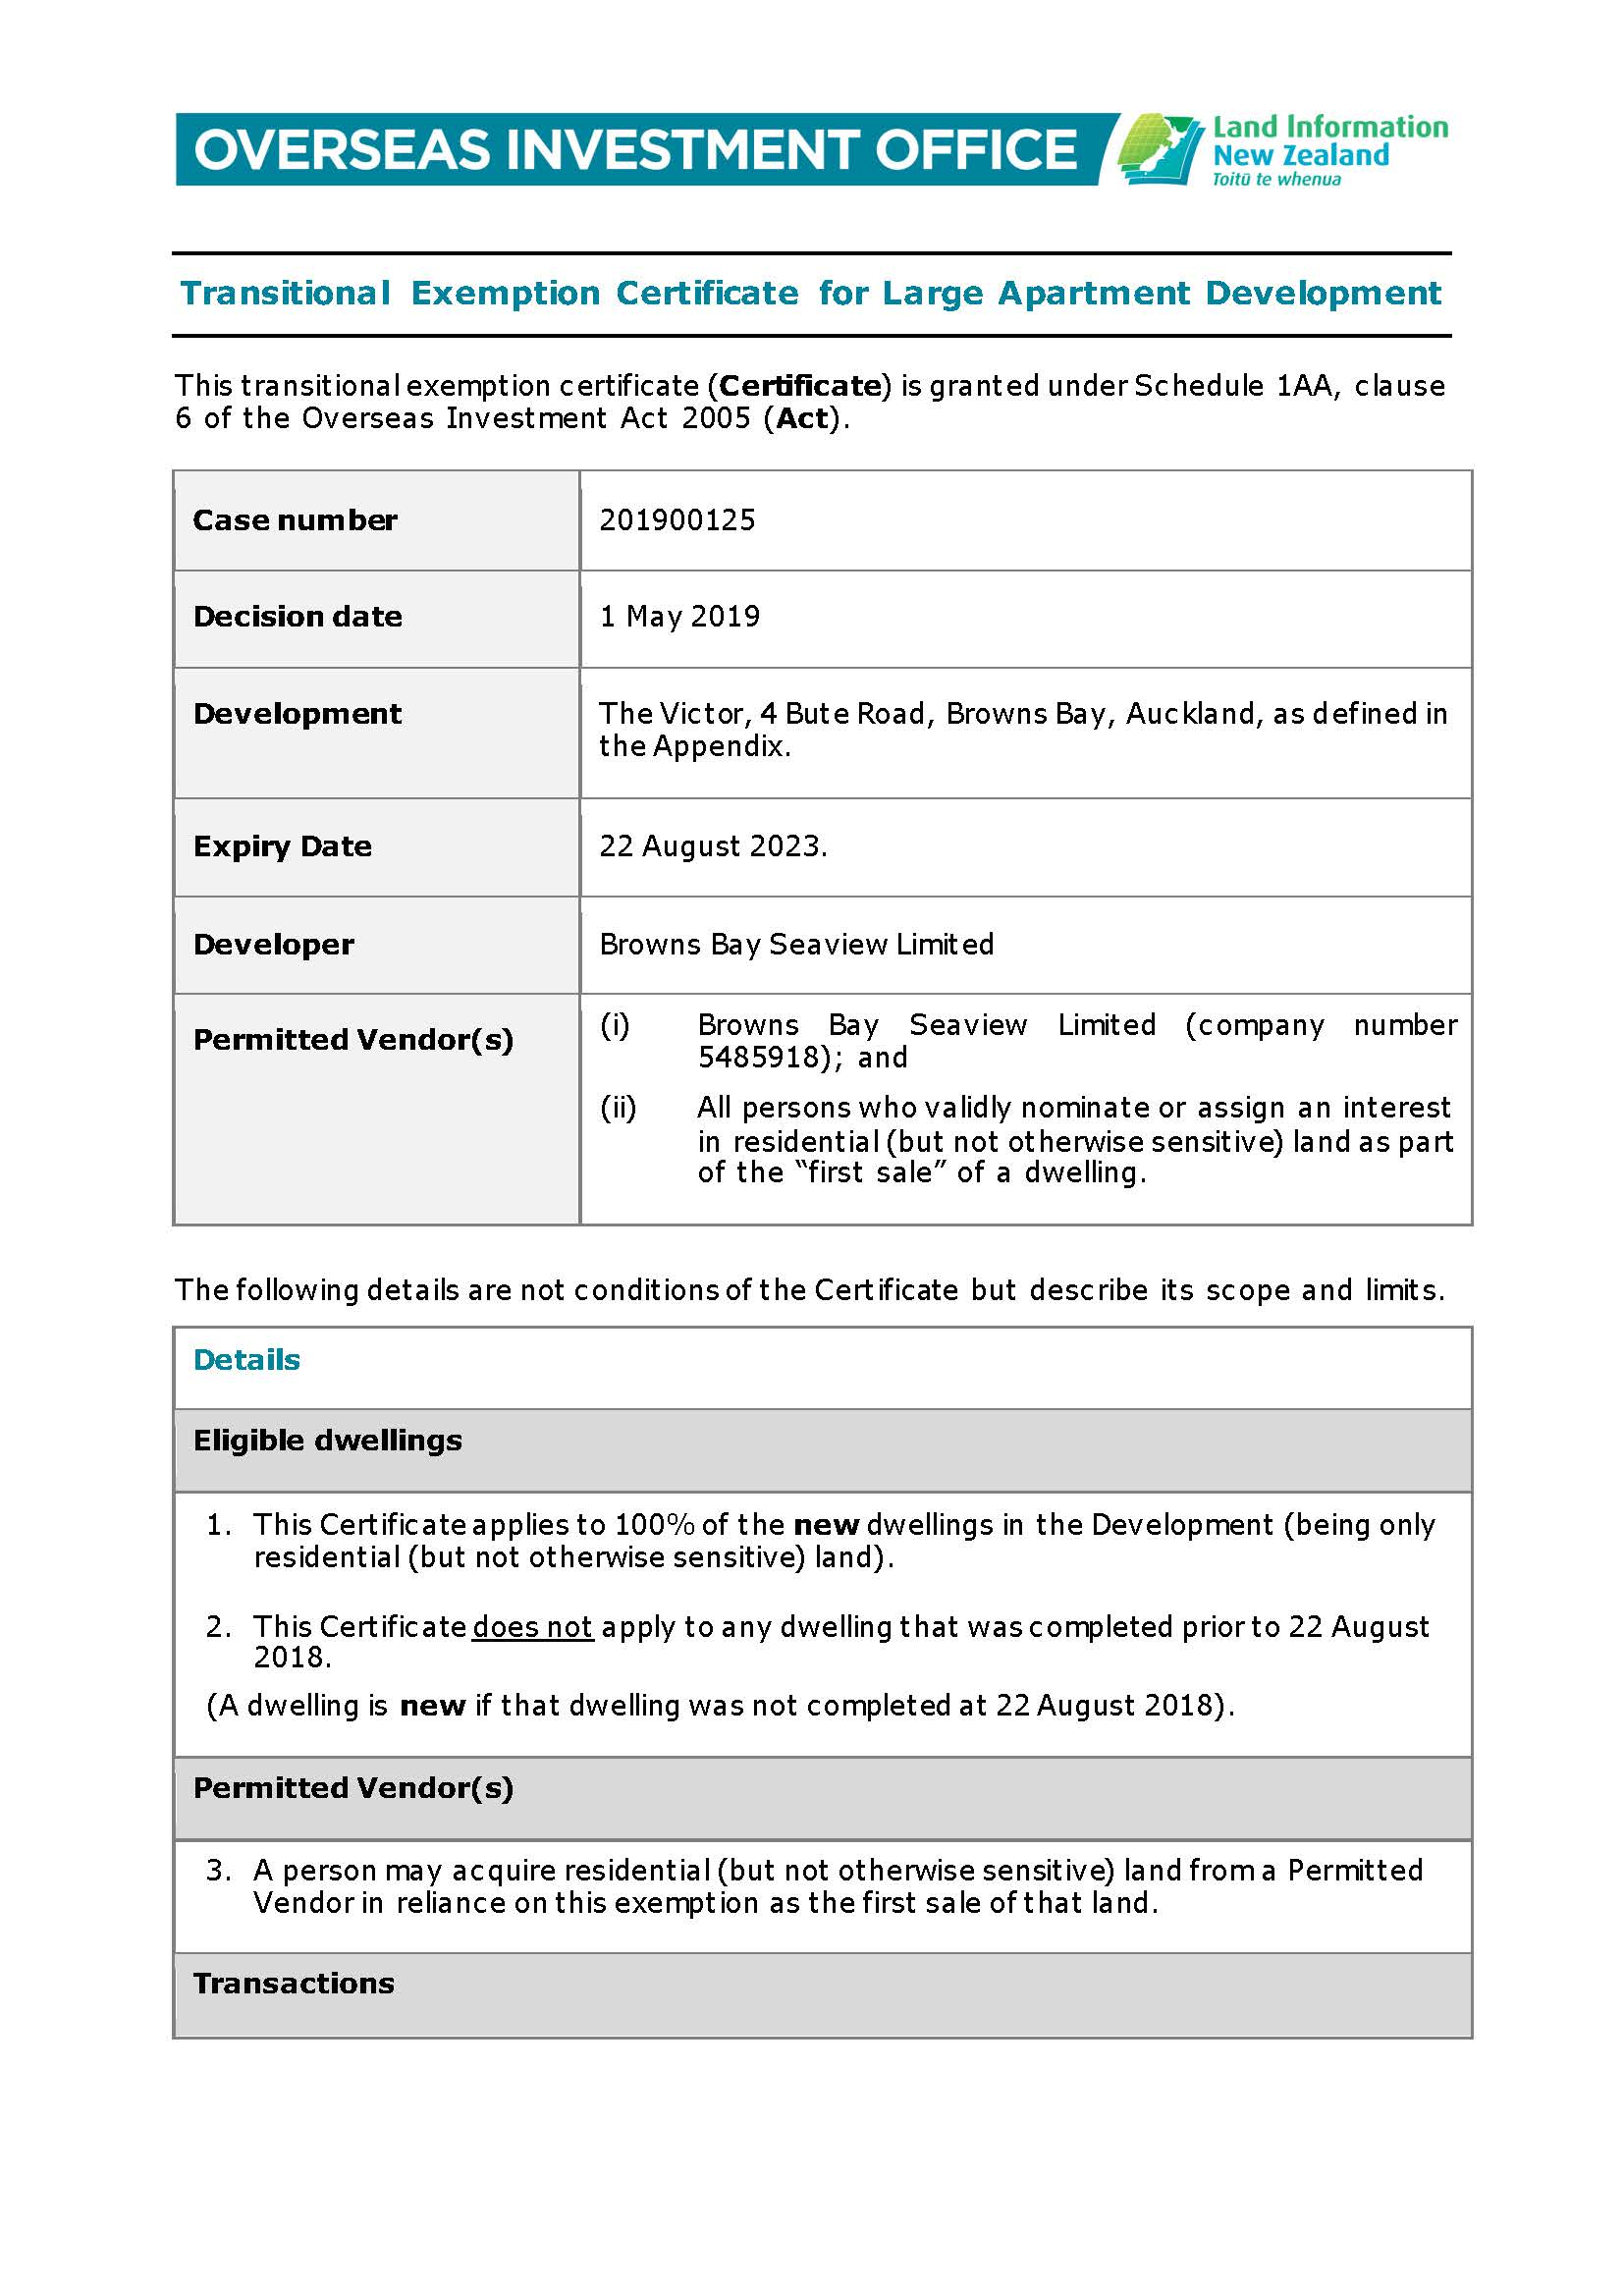 20190501 - Transitonal Exemption Certificate (OIO) - Browns Bay Seaview Limited - 04-08_Page_1.jpg